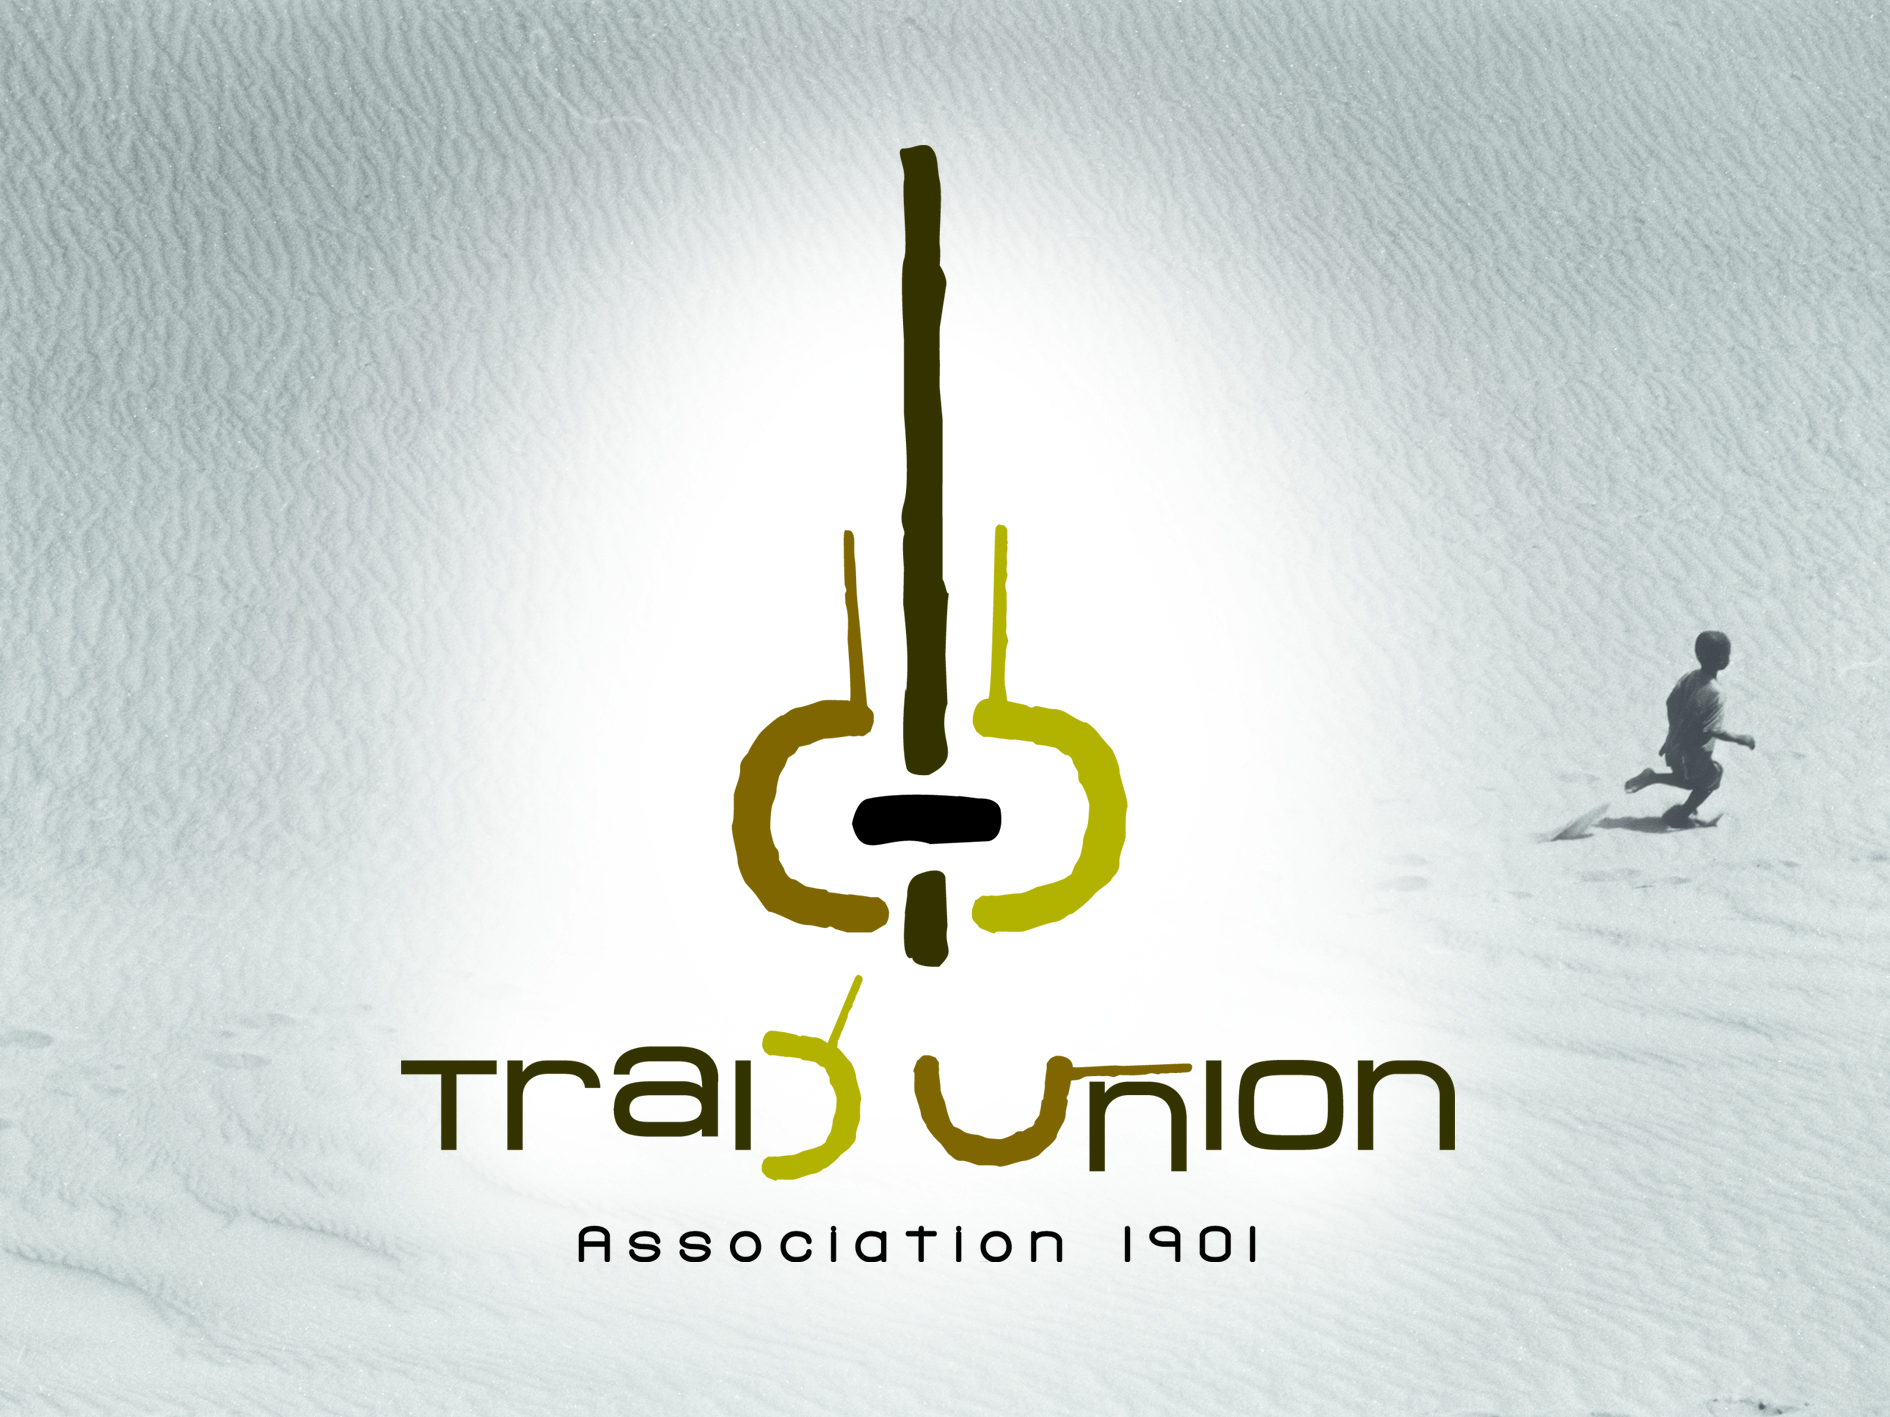 Traid'union